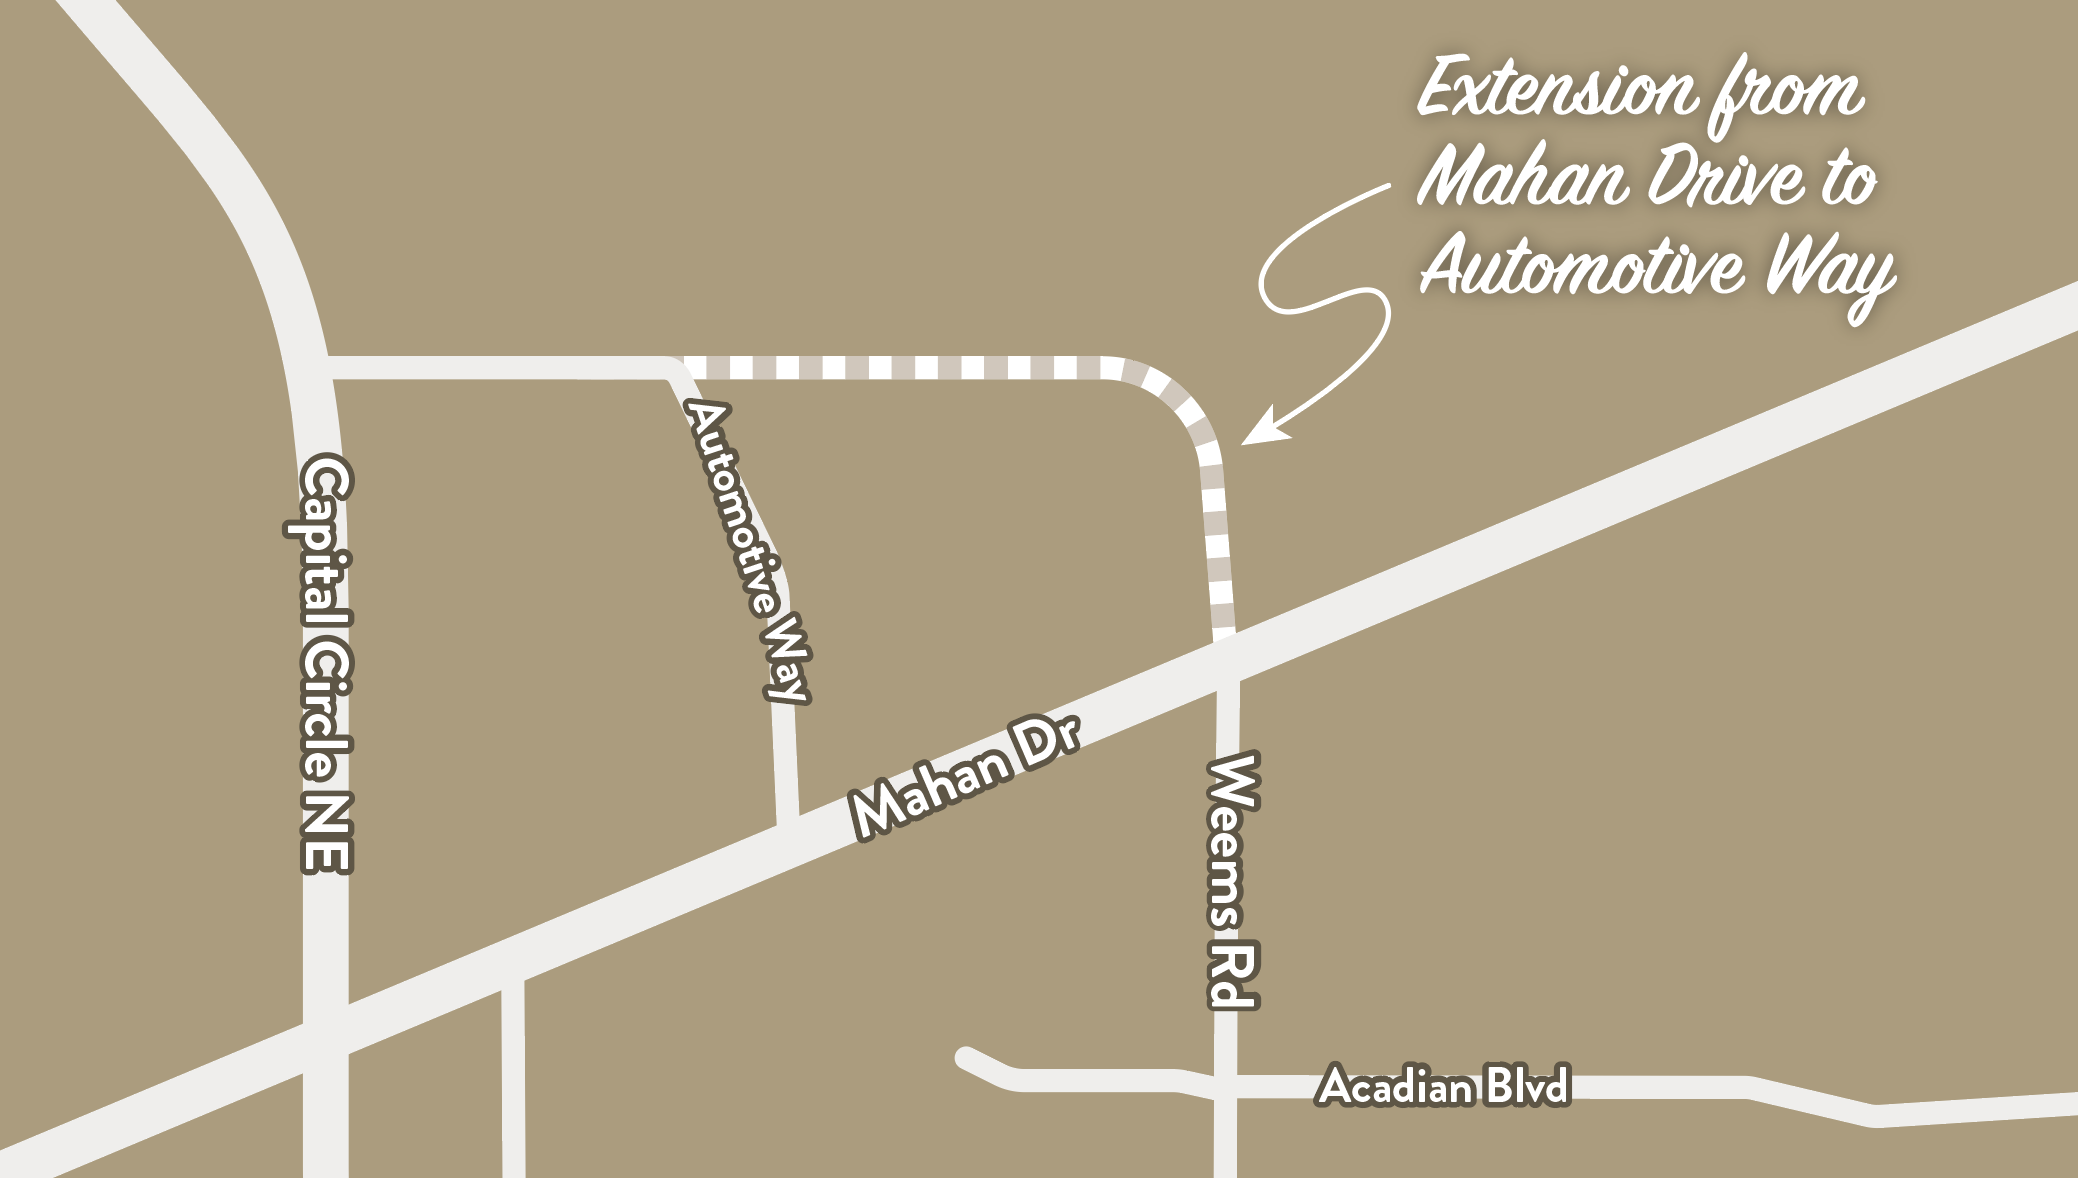 Map of the Weems Road Extension